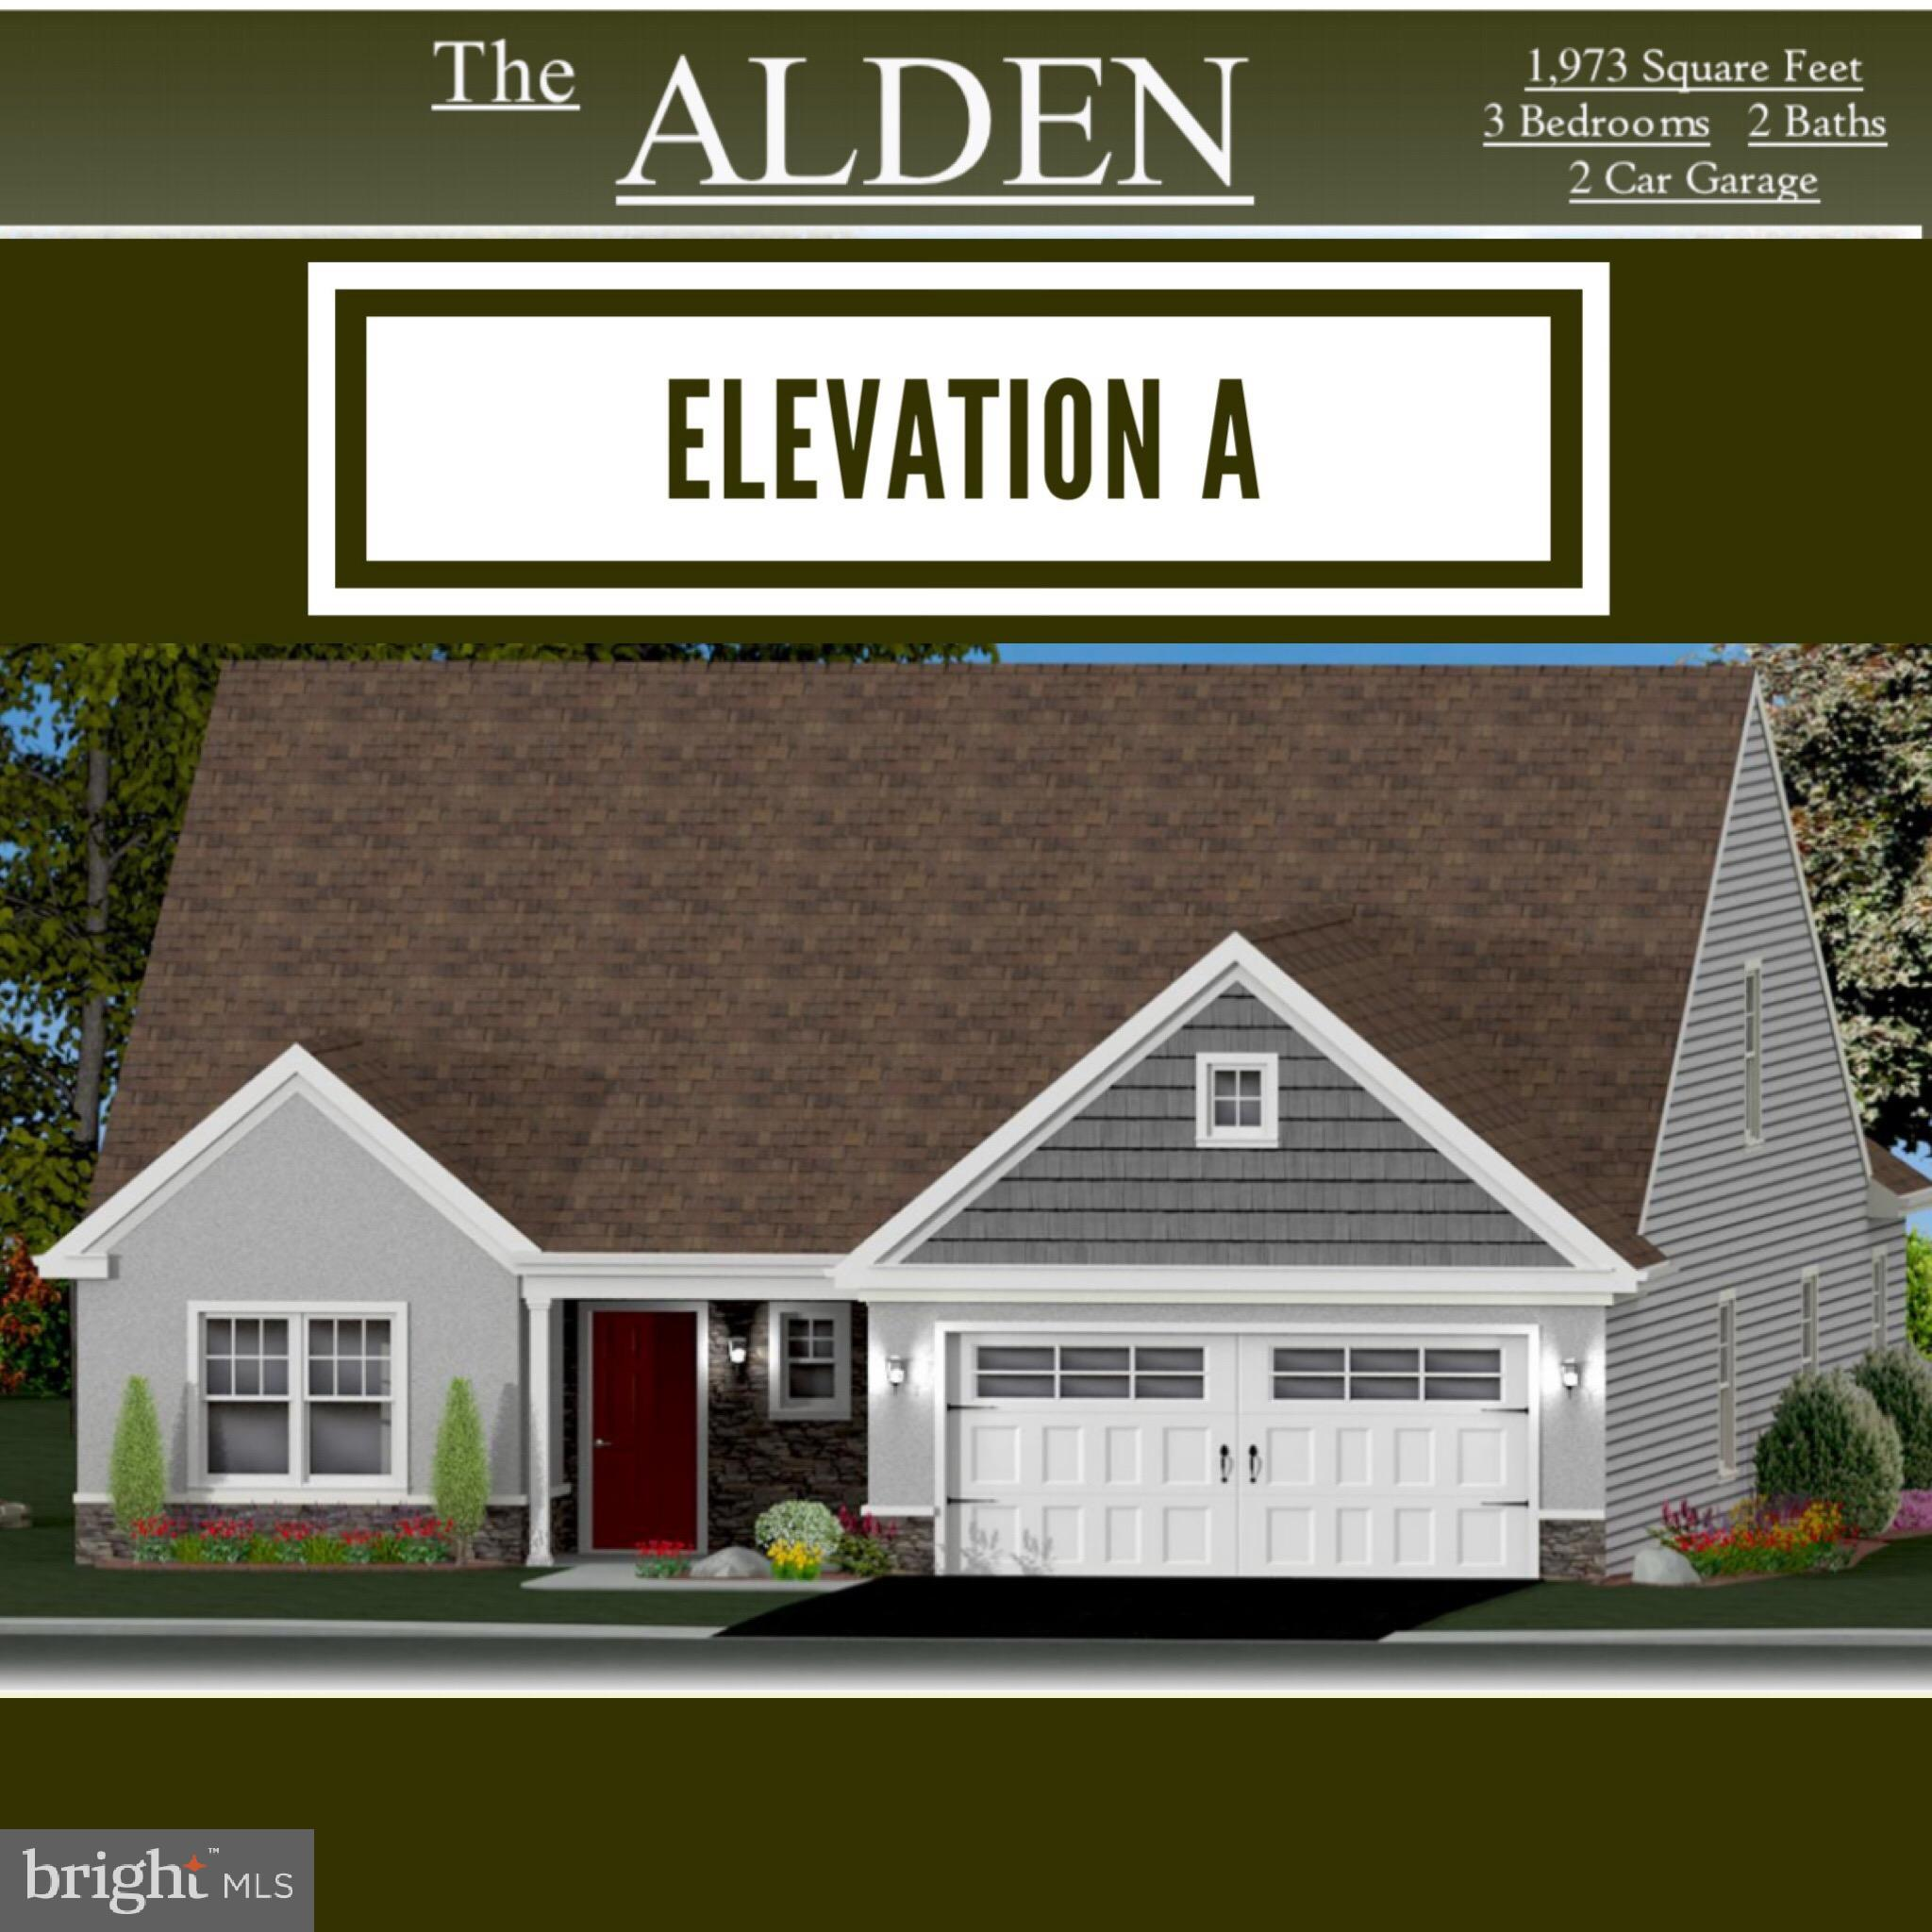 0 THE ALDEN - ALDEN HOMES AT MOUNTAIN MEADOWS, MYERSTOWN, PA 17067